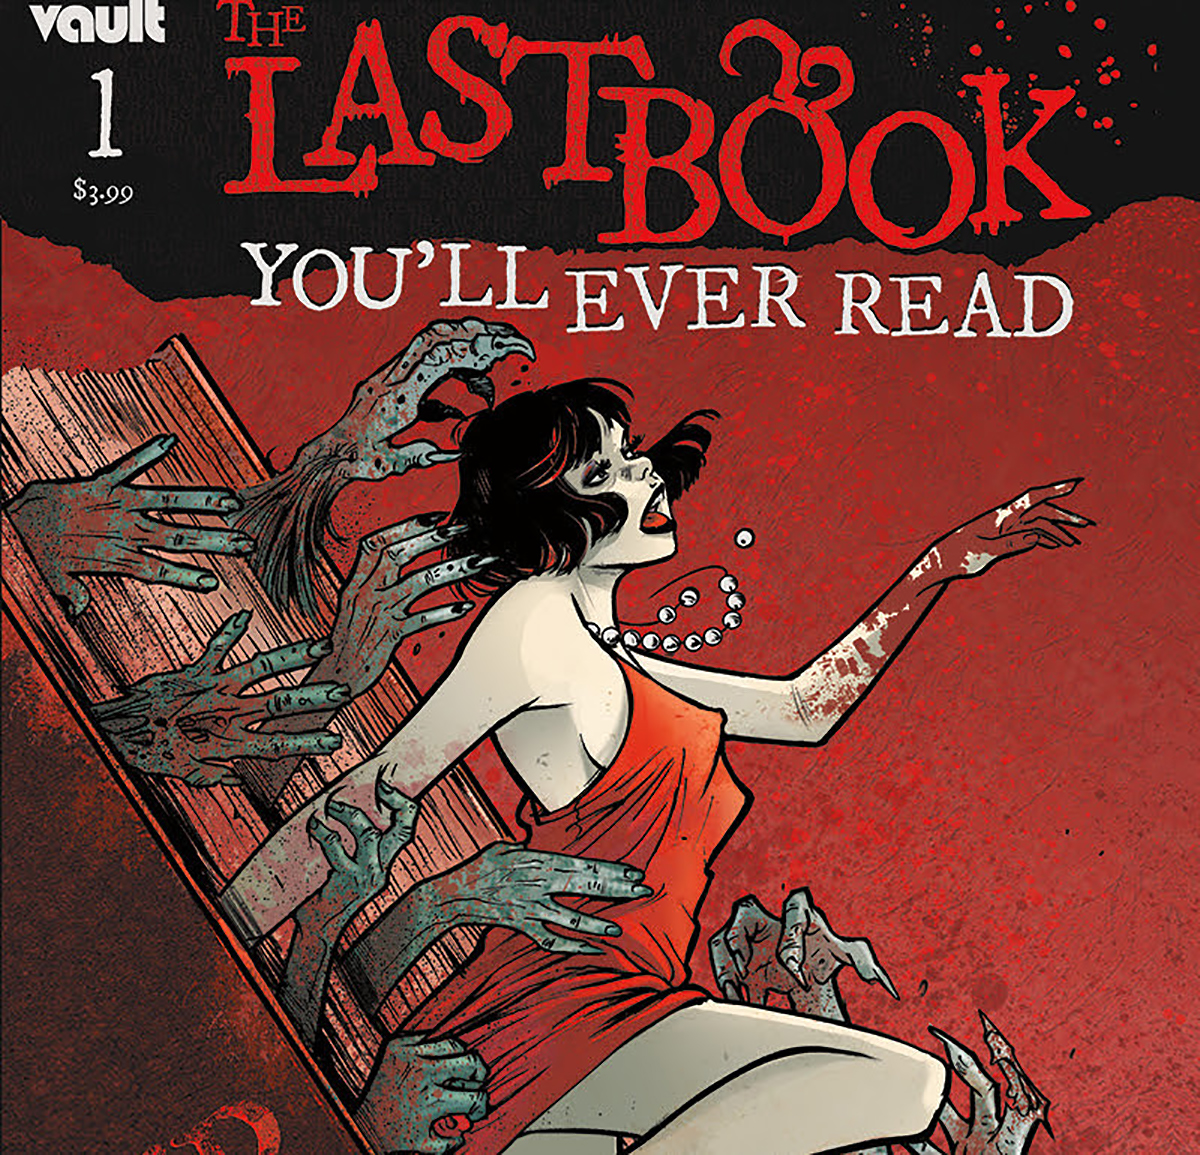 'The Last Book You'll Ever Read' #1 draws you into its horror world